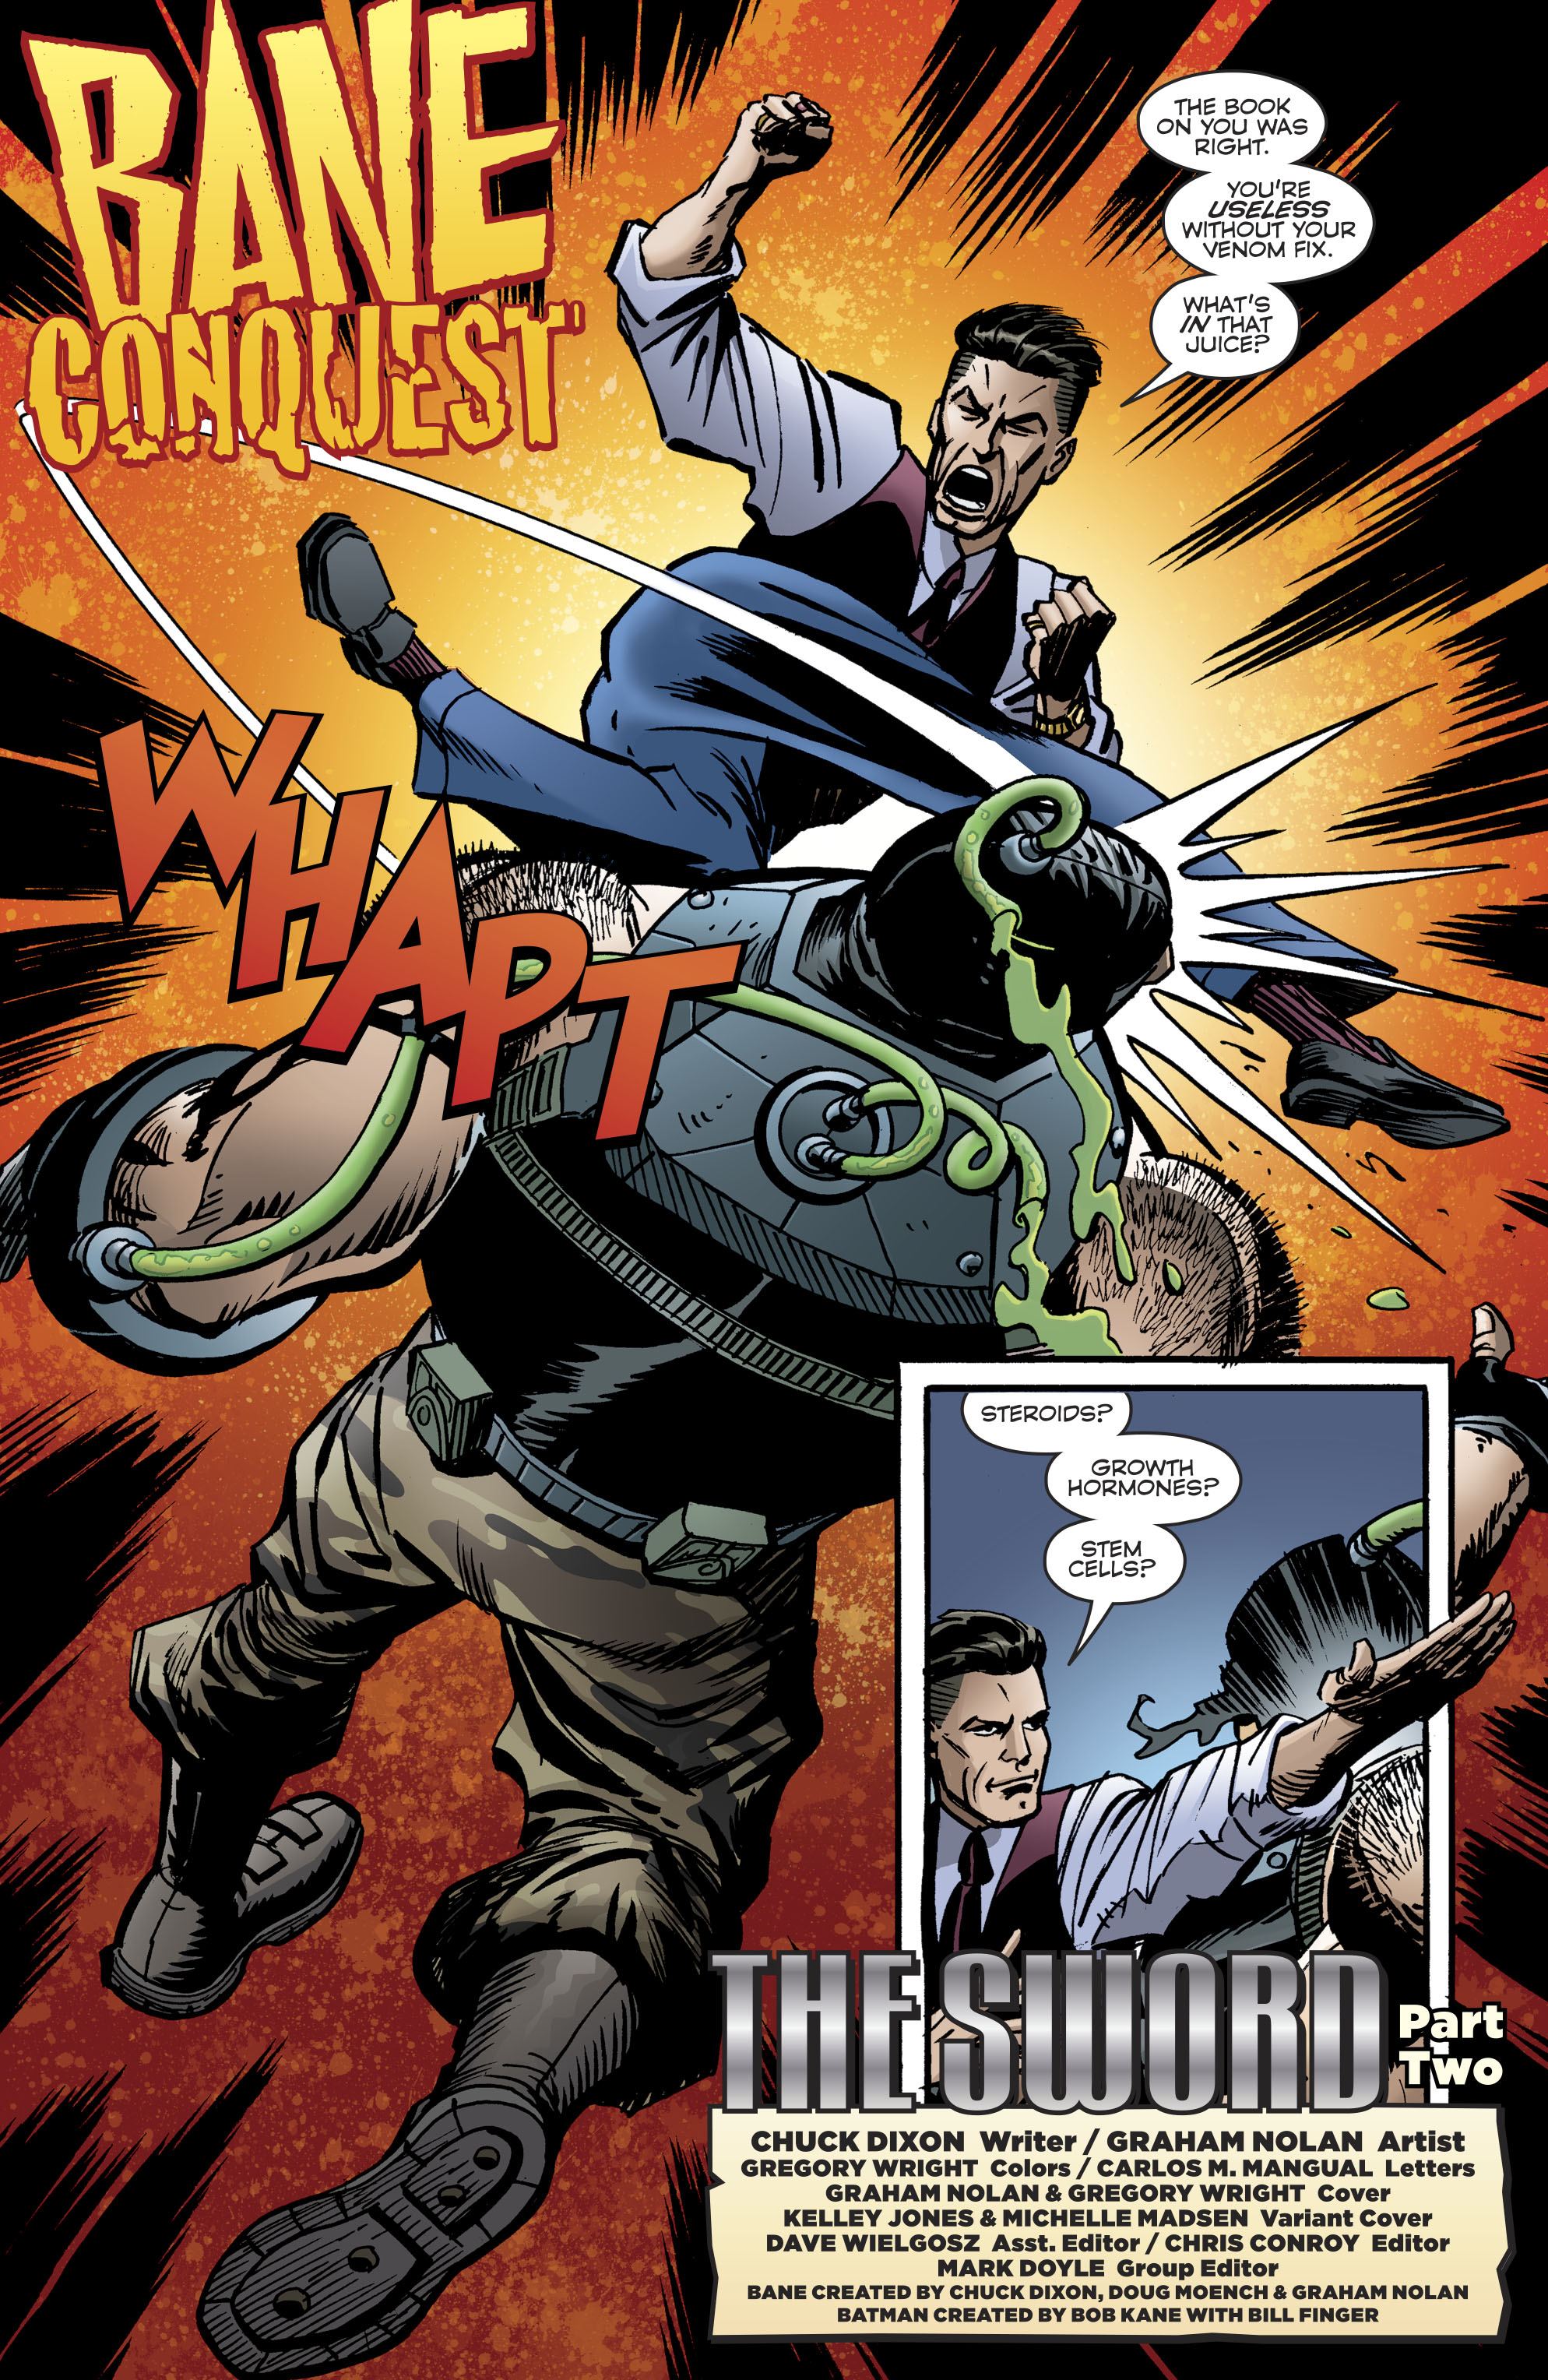 Read online Bane: Conquest comic -  Issue #2 - 4